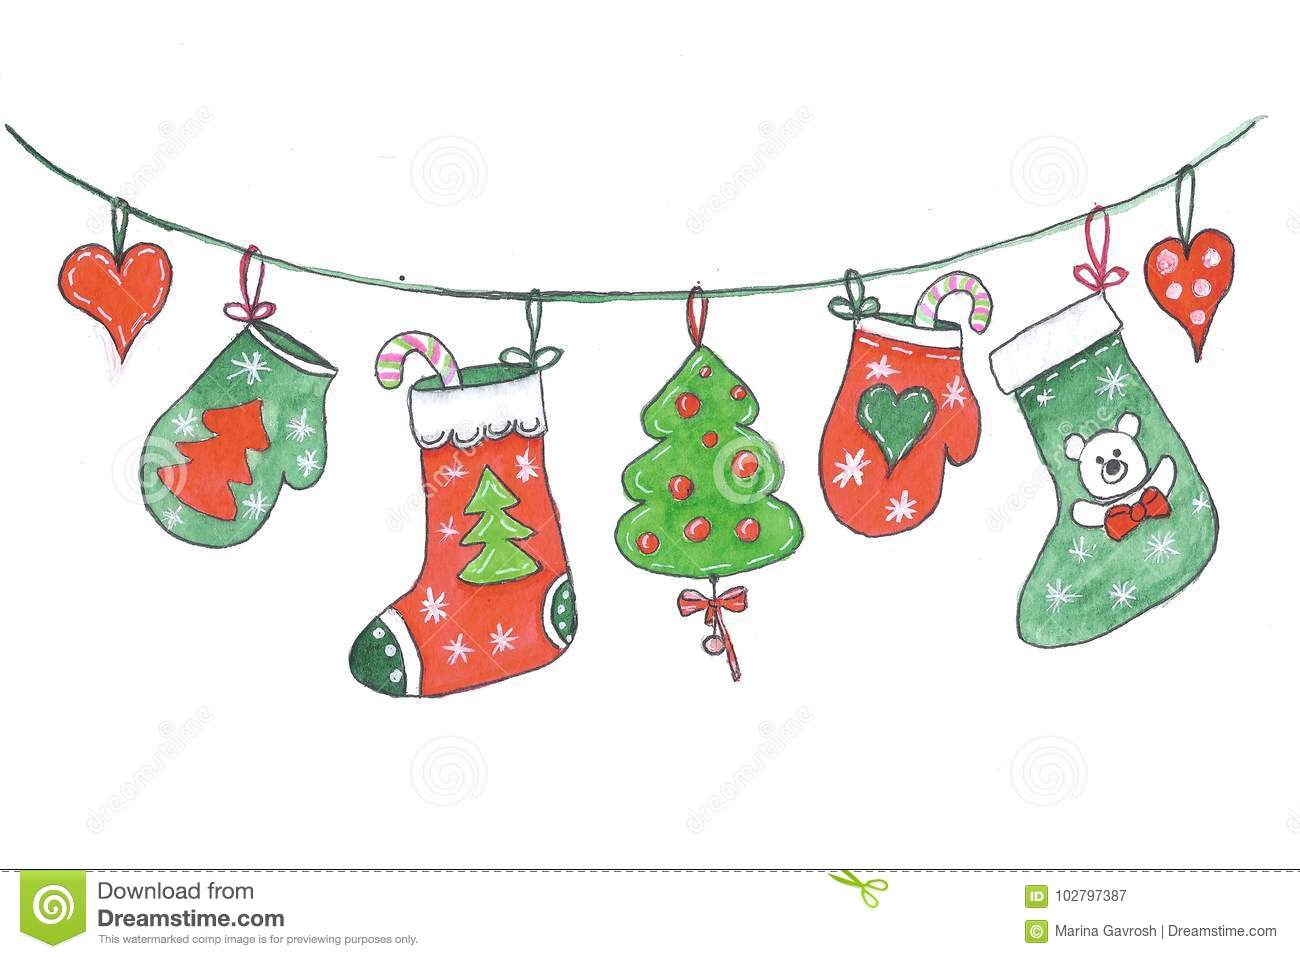 merry christmas decorations hanging on a rope drawing in watercolor